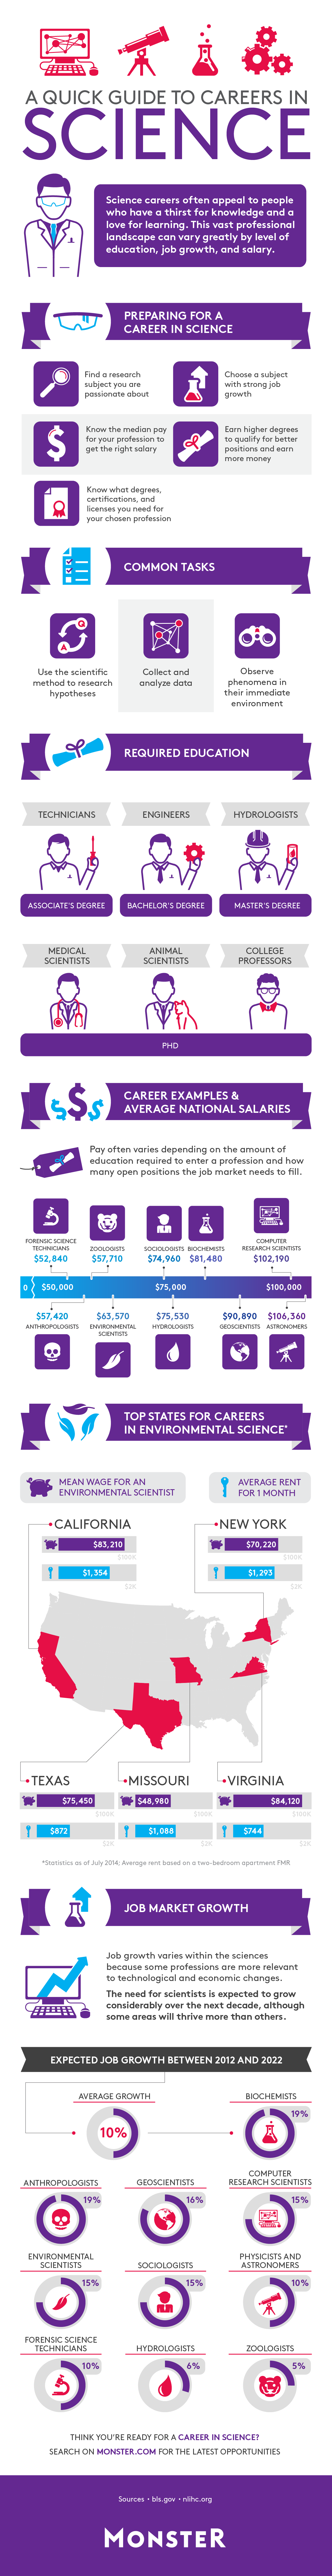 A Quick Guide to Careers in Science